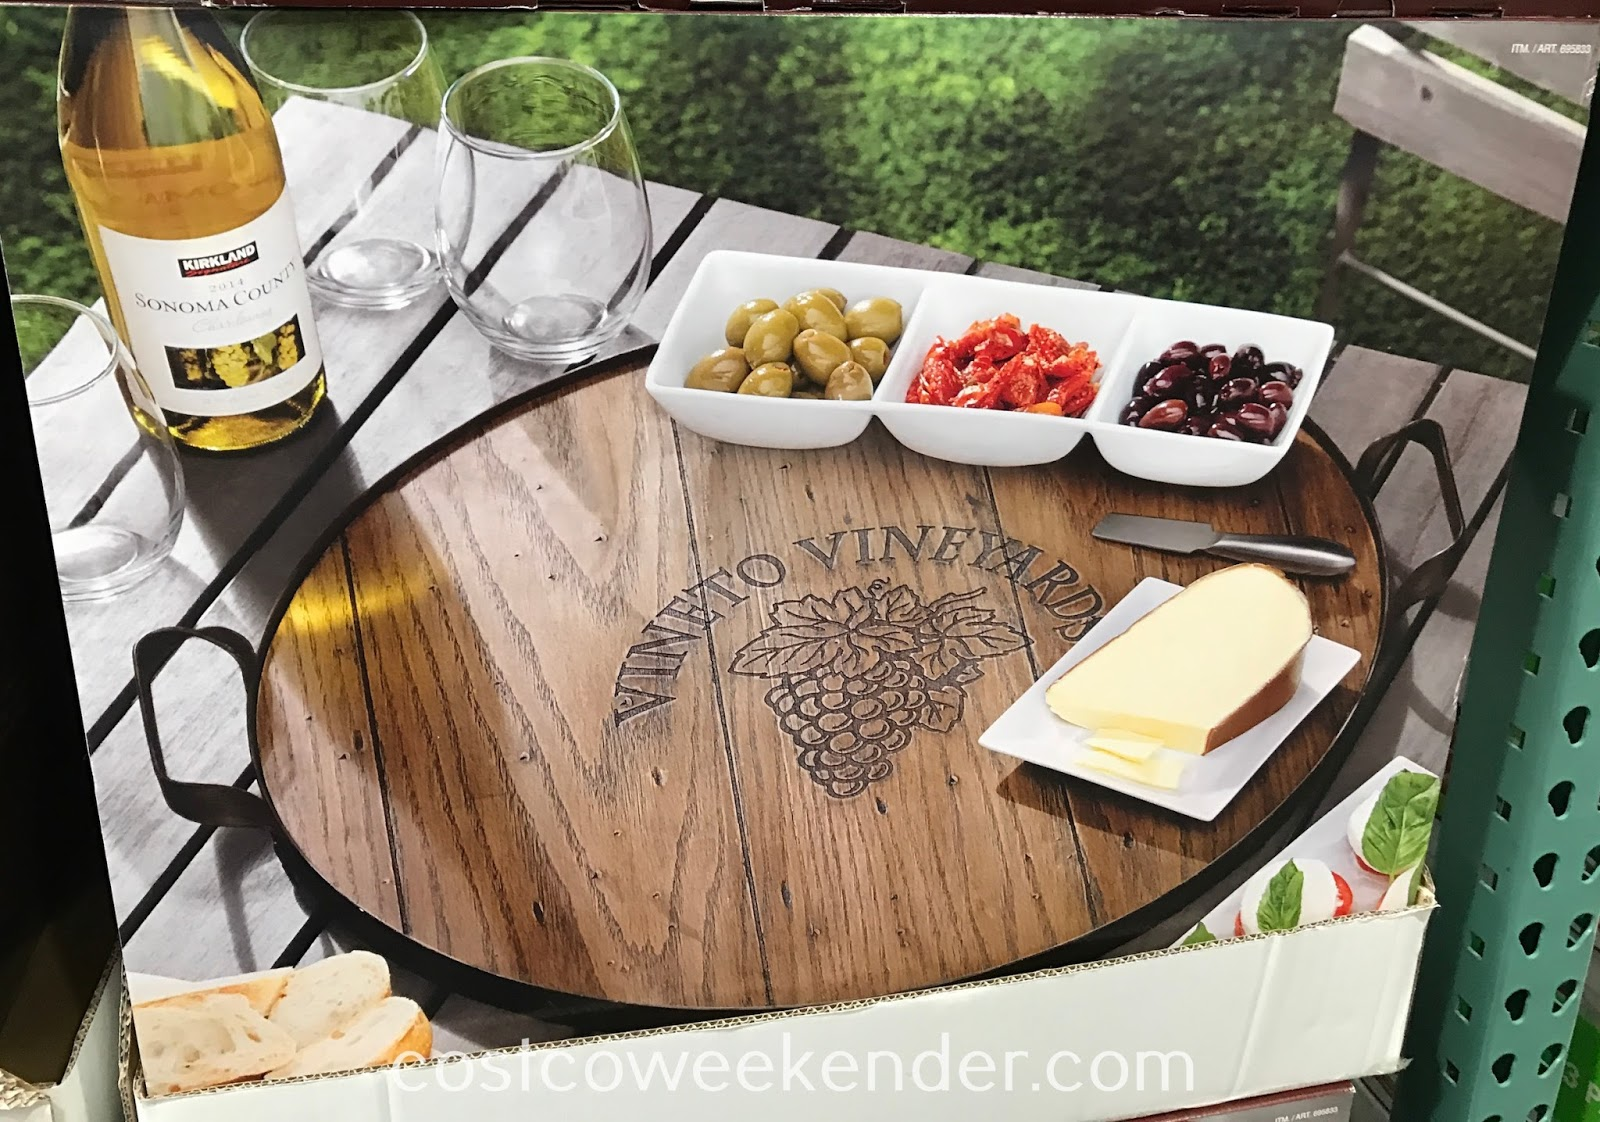 Serve delicious hors d'oeuvres to guests with the Mercuries Wine Barrel Tray